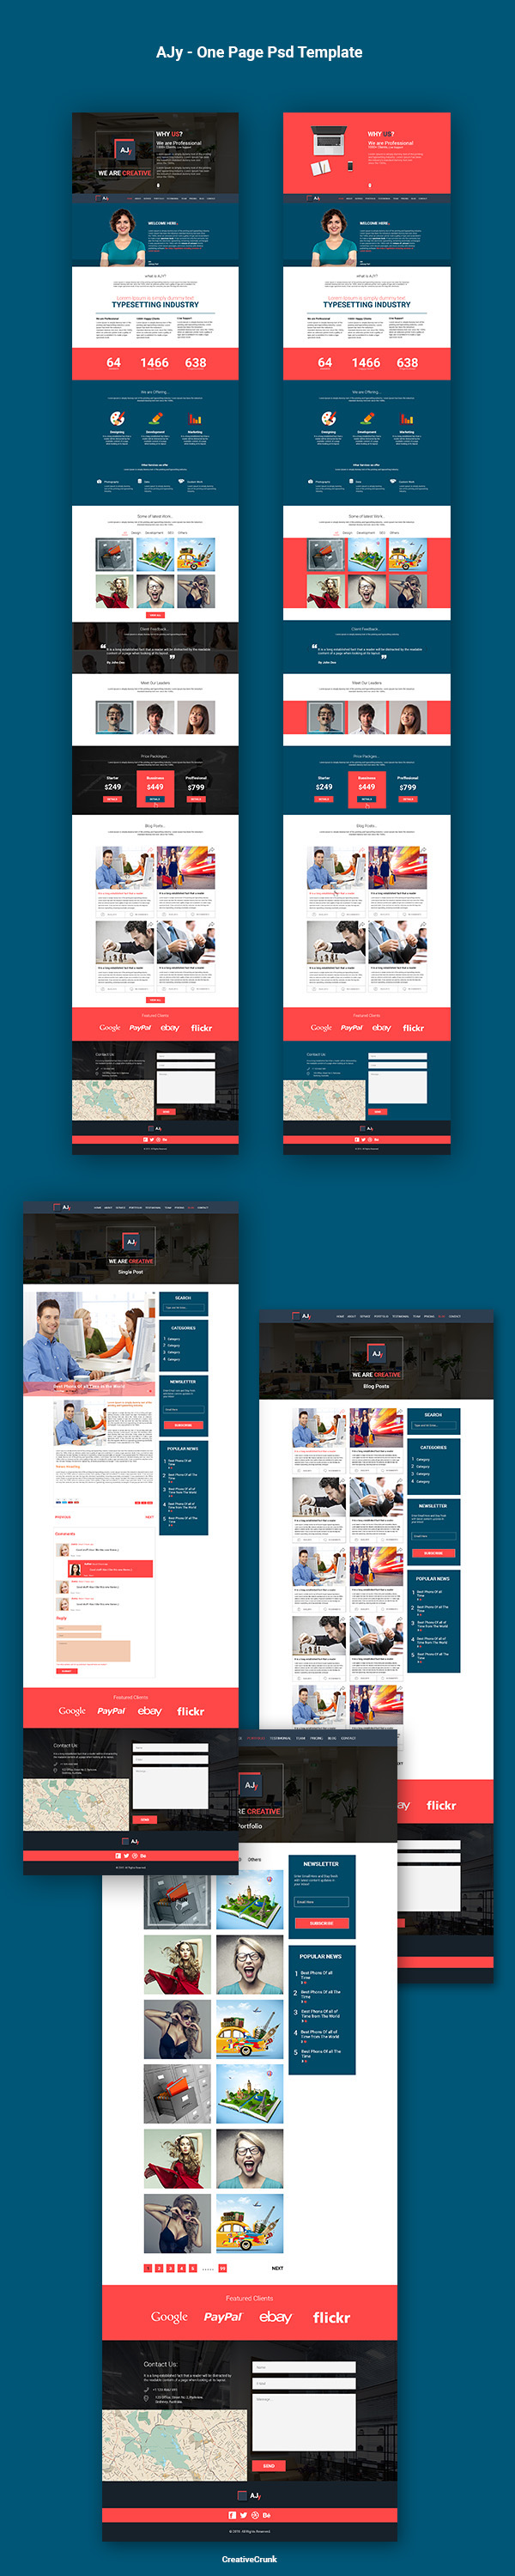 AJy – One Page Psd Template